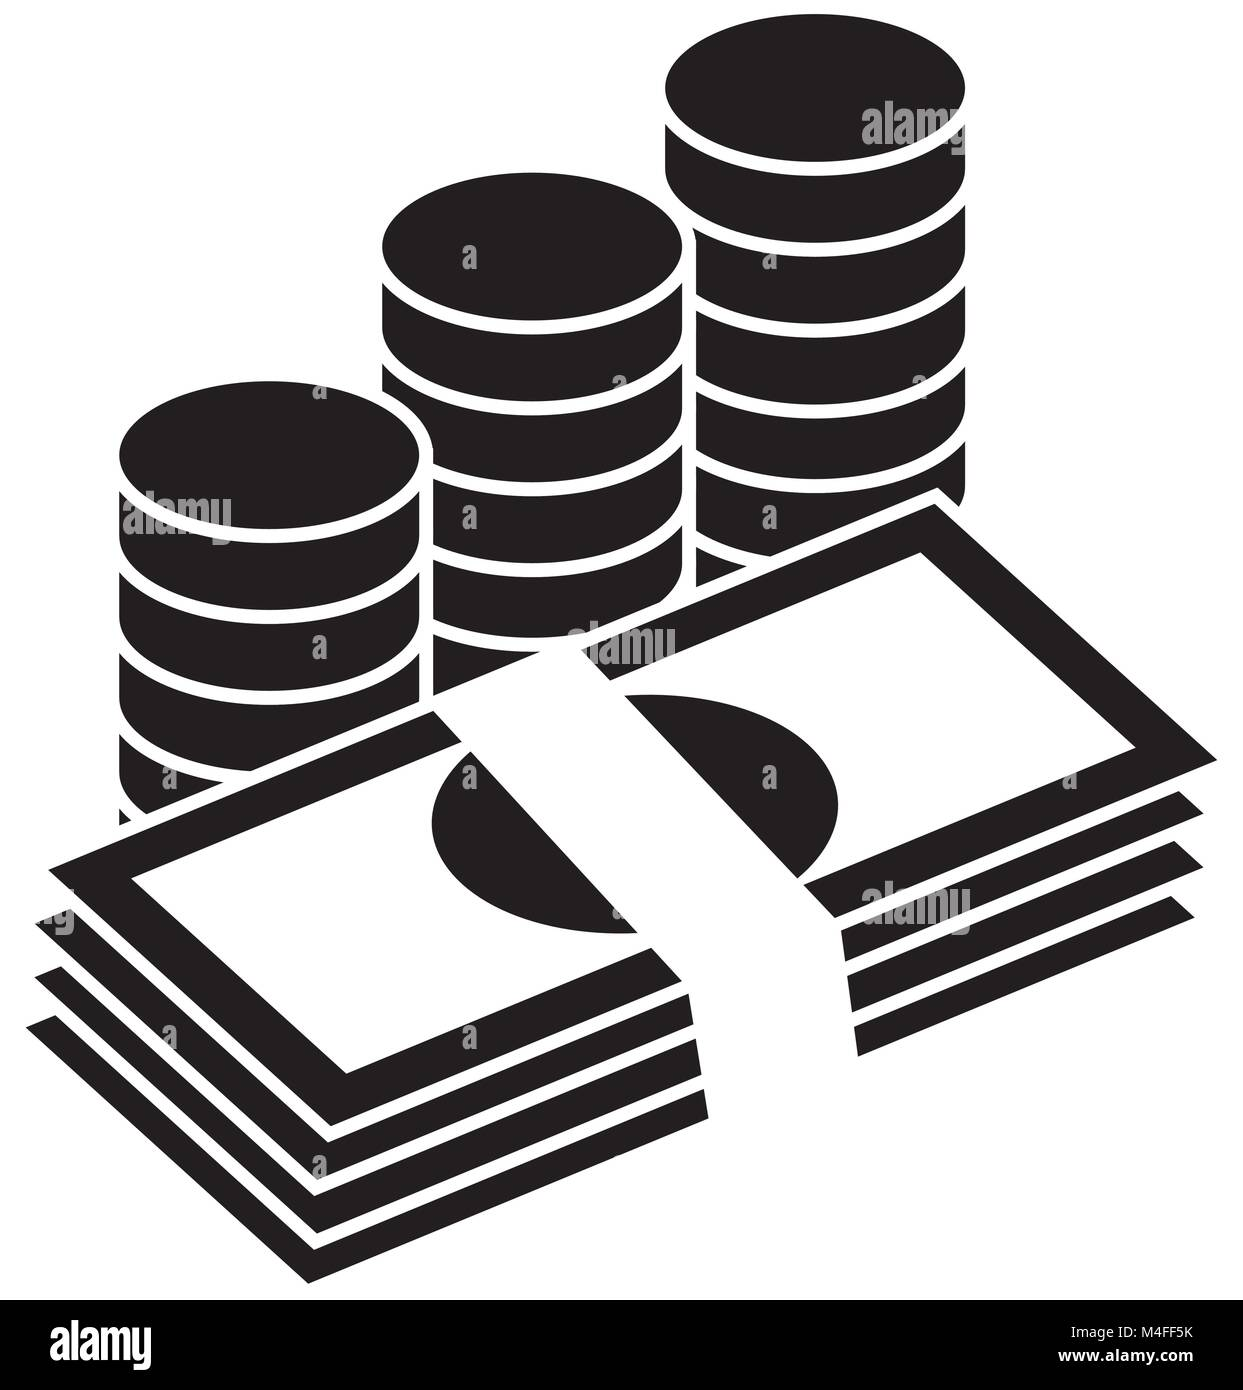 Pile of bank notes or bills and coins stacked currency icon or pile of bank notes or bills and coins stacked currency icon or logo vector symbol for banking or finances biocorpaavc Gallery